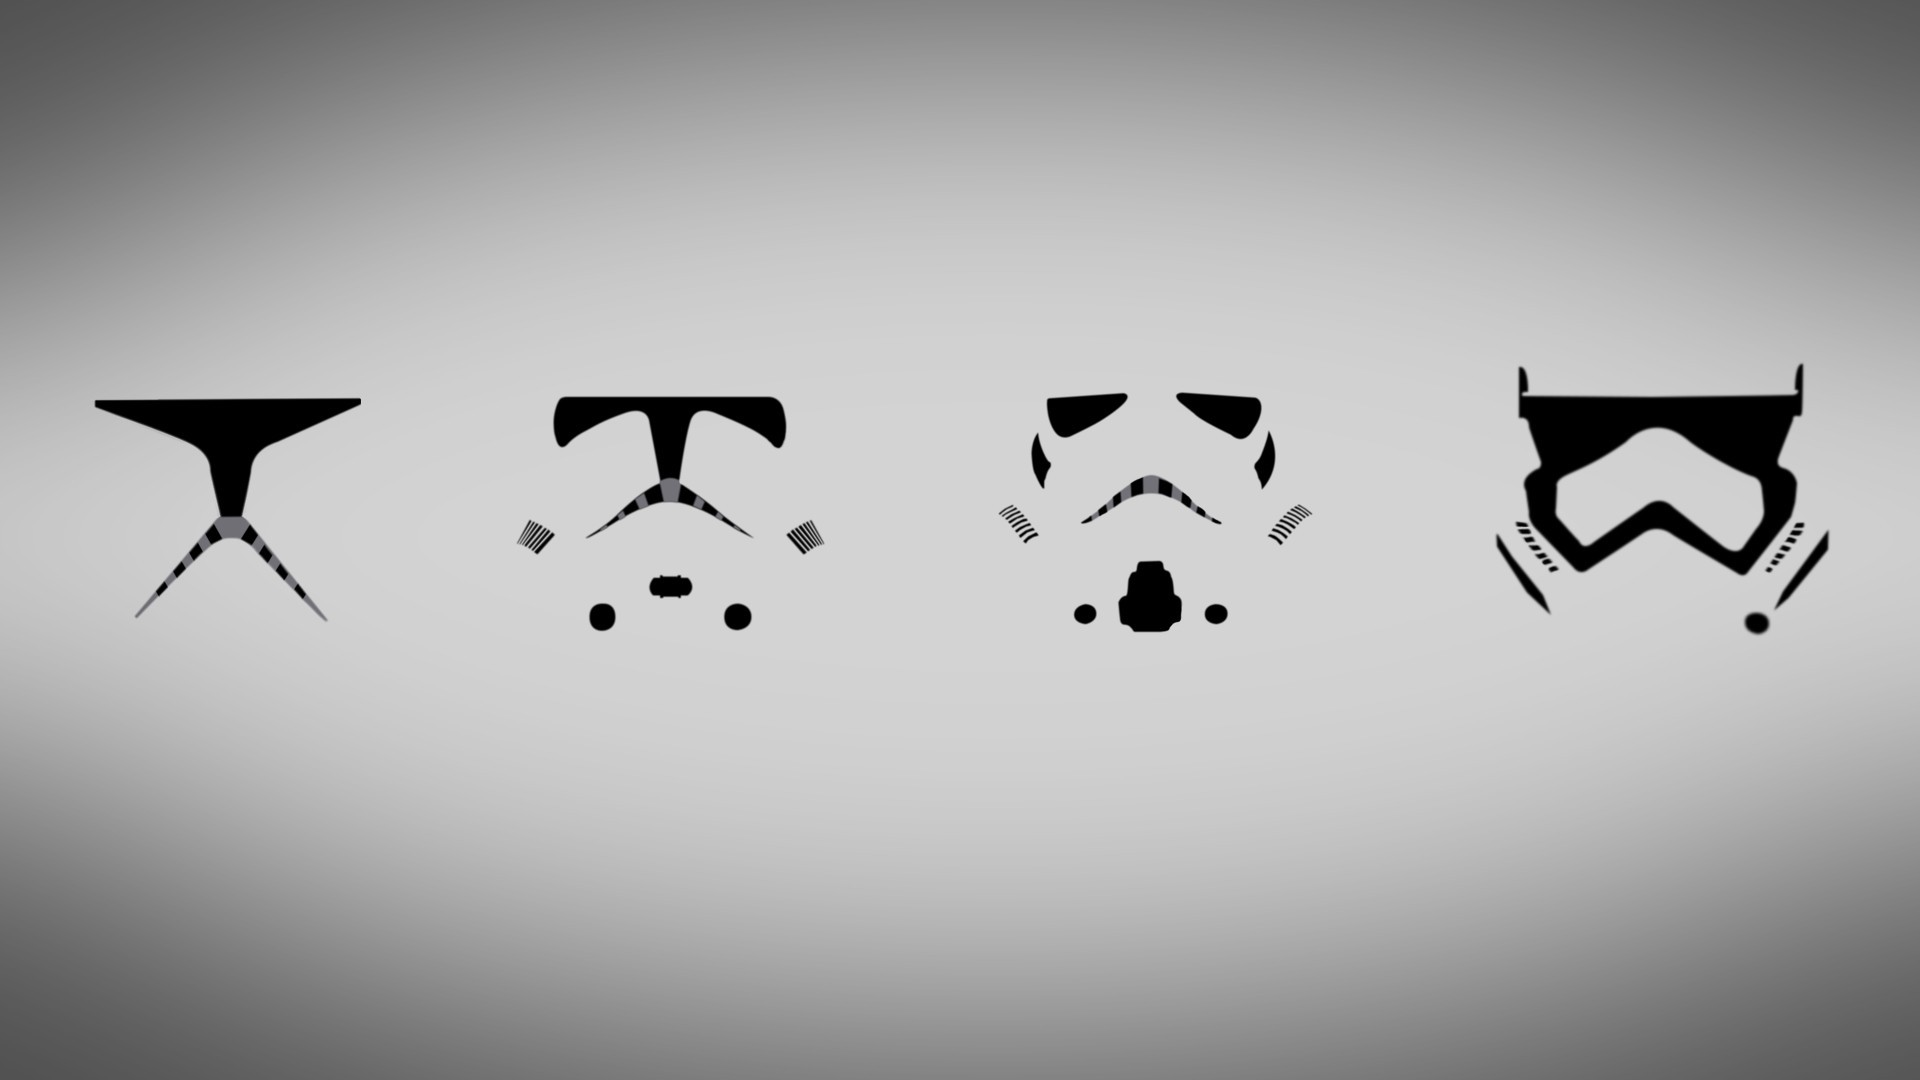 star wars episode 7 wallpaper 1920x1080